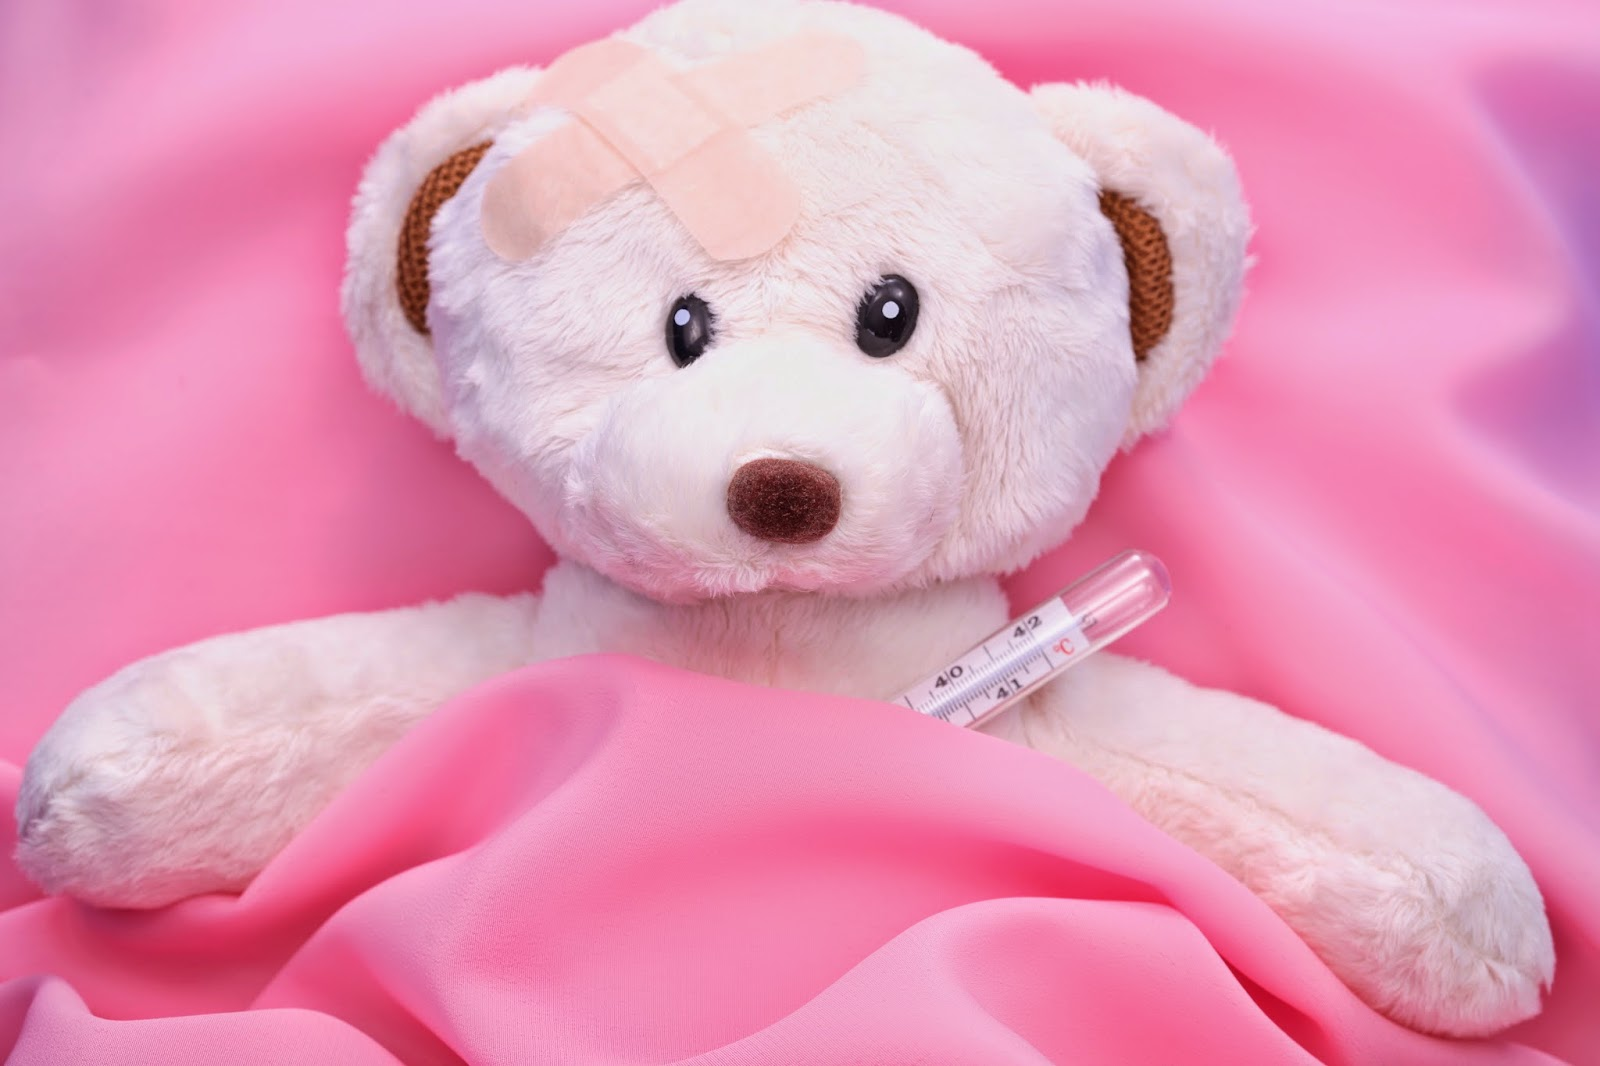 Teddy-with-fever-in-bed-image-4368x2912.jpg